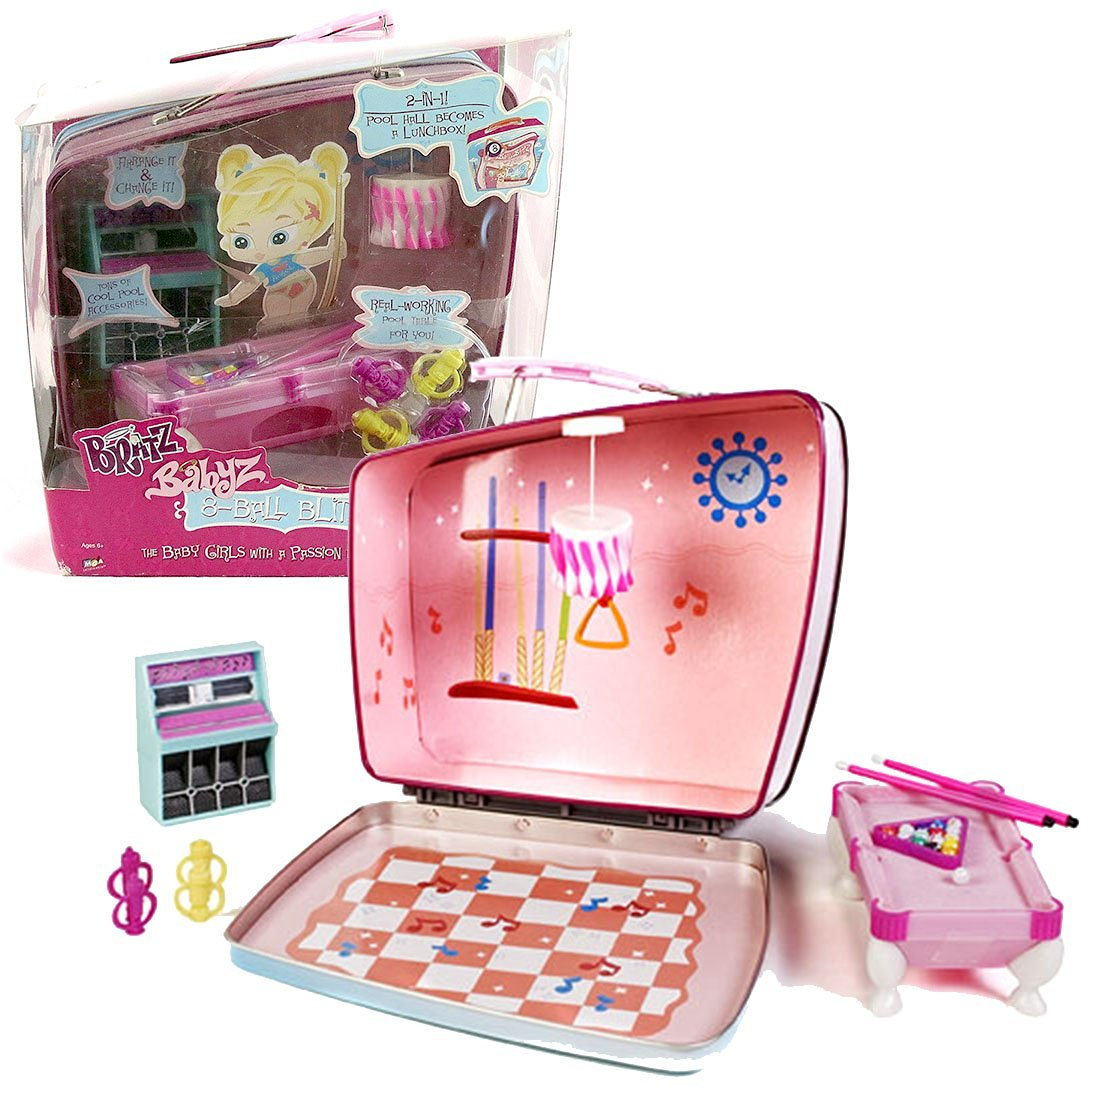 MGA Entertainment Bratz Babyz Accessory Set : 8-BALL BLITZ with Pool Hall that Becomes Lunchbox, Pool Table with Balls and Cue Sticks, Lamp, Jukebox and 4 Tiki Cups